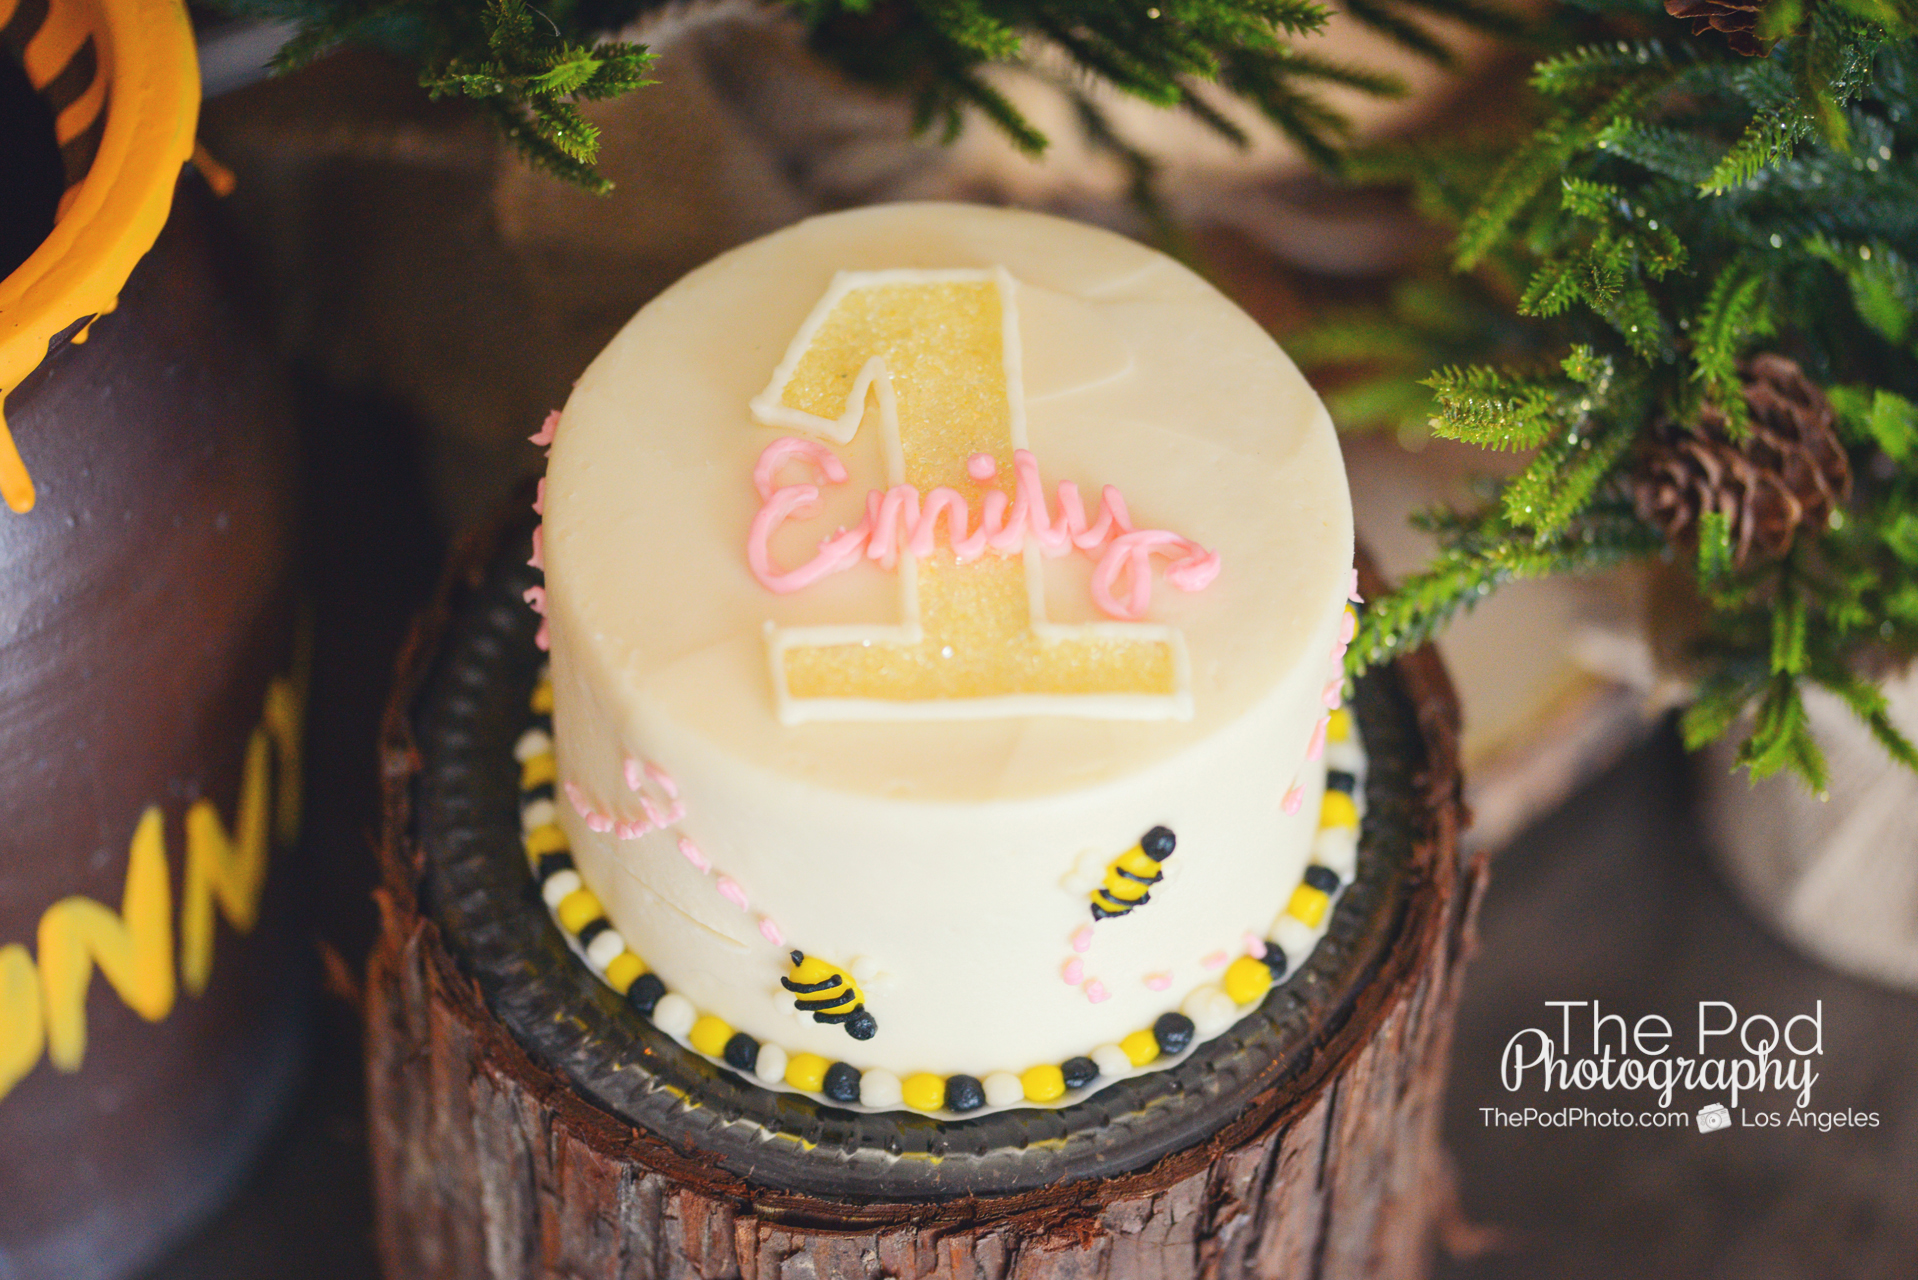 Susiecakes Cake Smash Winnie The Pooh Rustic First Birthday Photographer Los Angeles Pod Photography